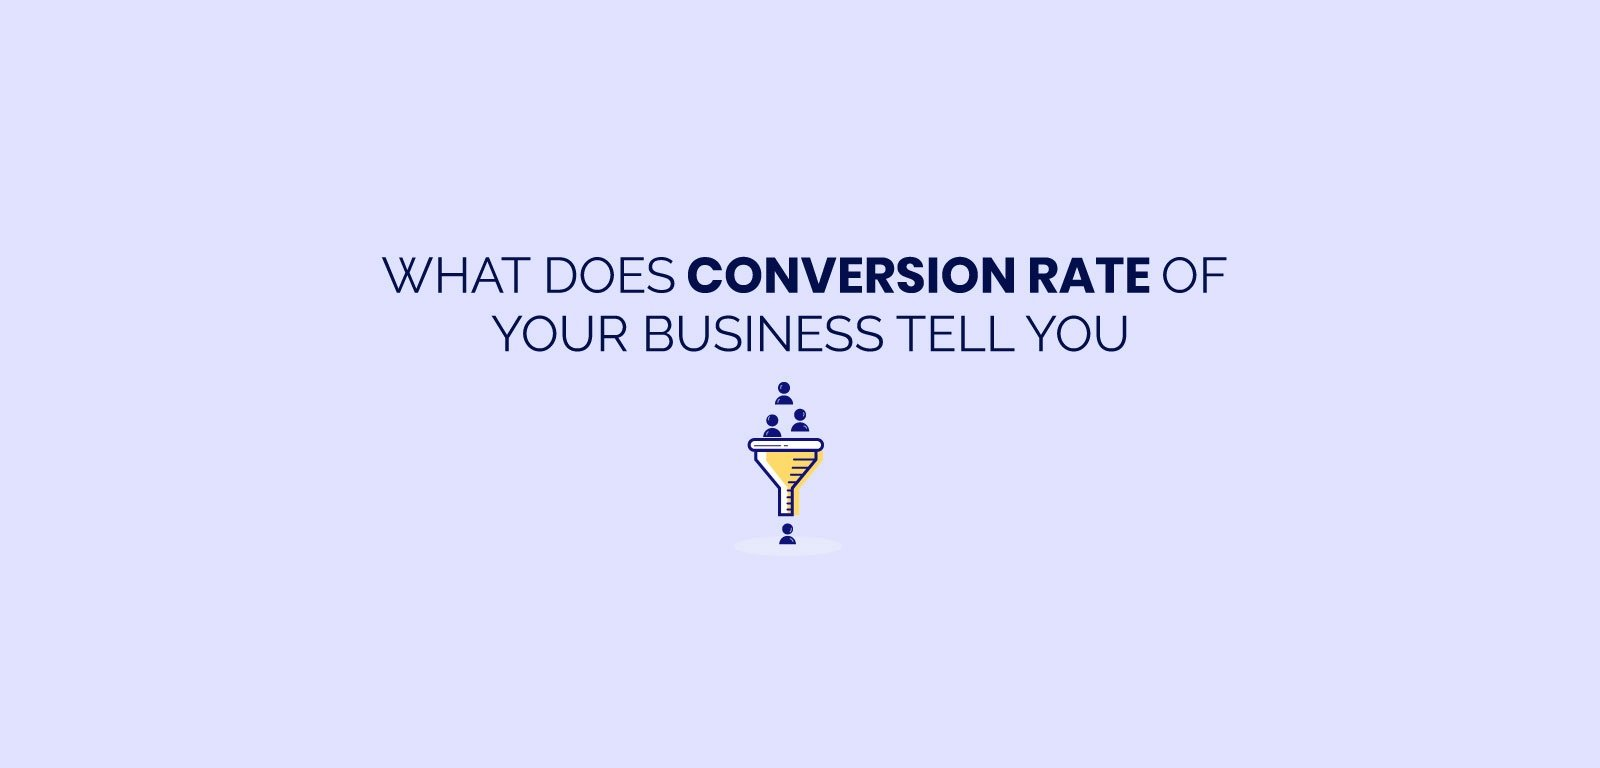 What does conversion rate of your business tell you?